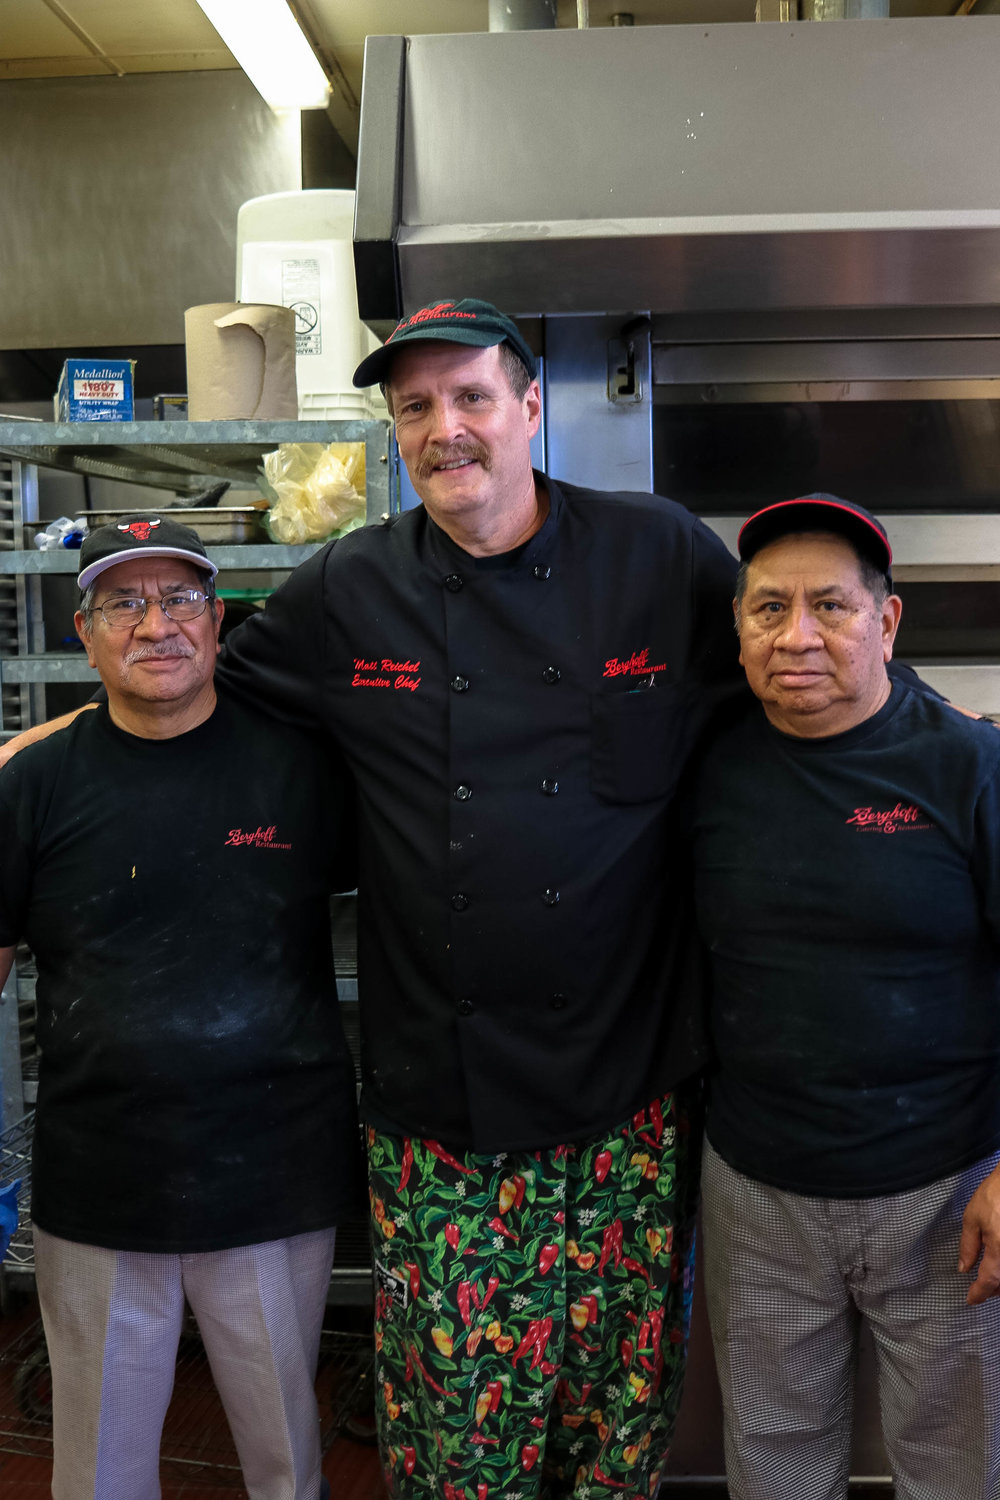 These brothers have been running the in-house bakery for 30 years!